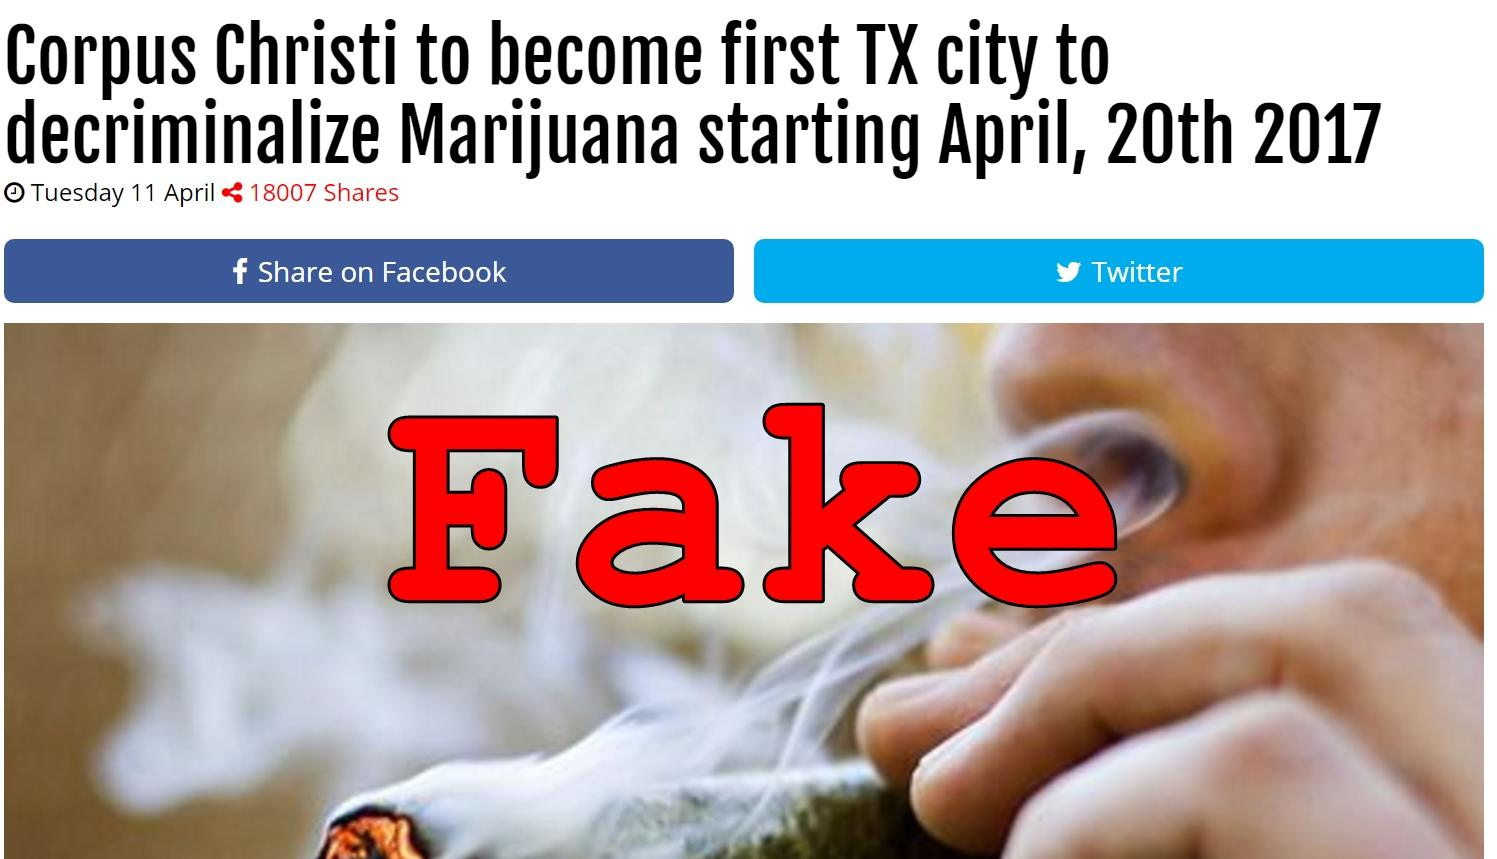 Fake News Corpus Christi Not To Become First Tx City To